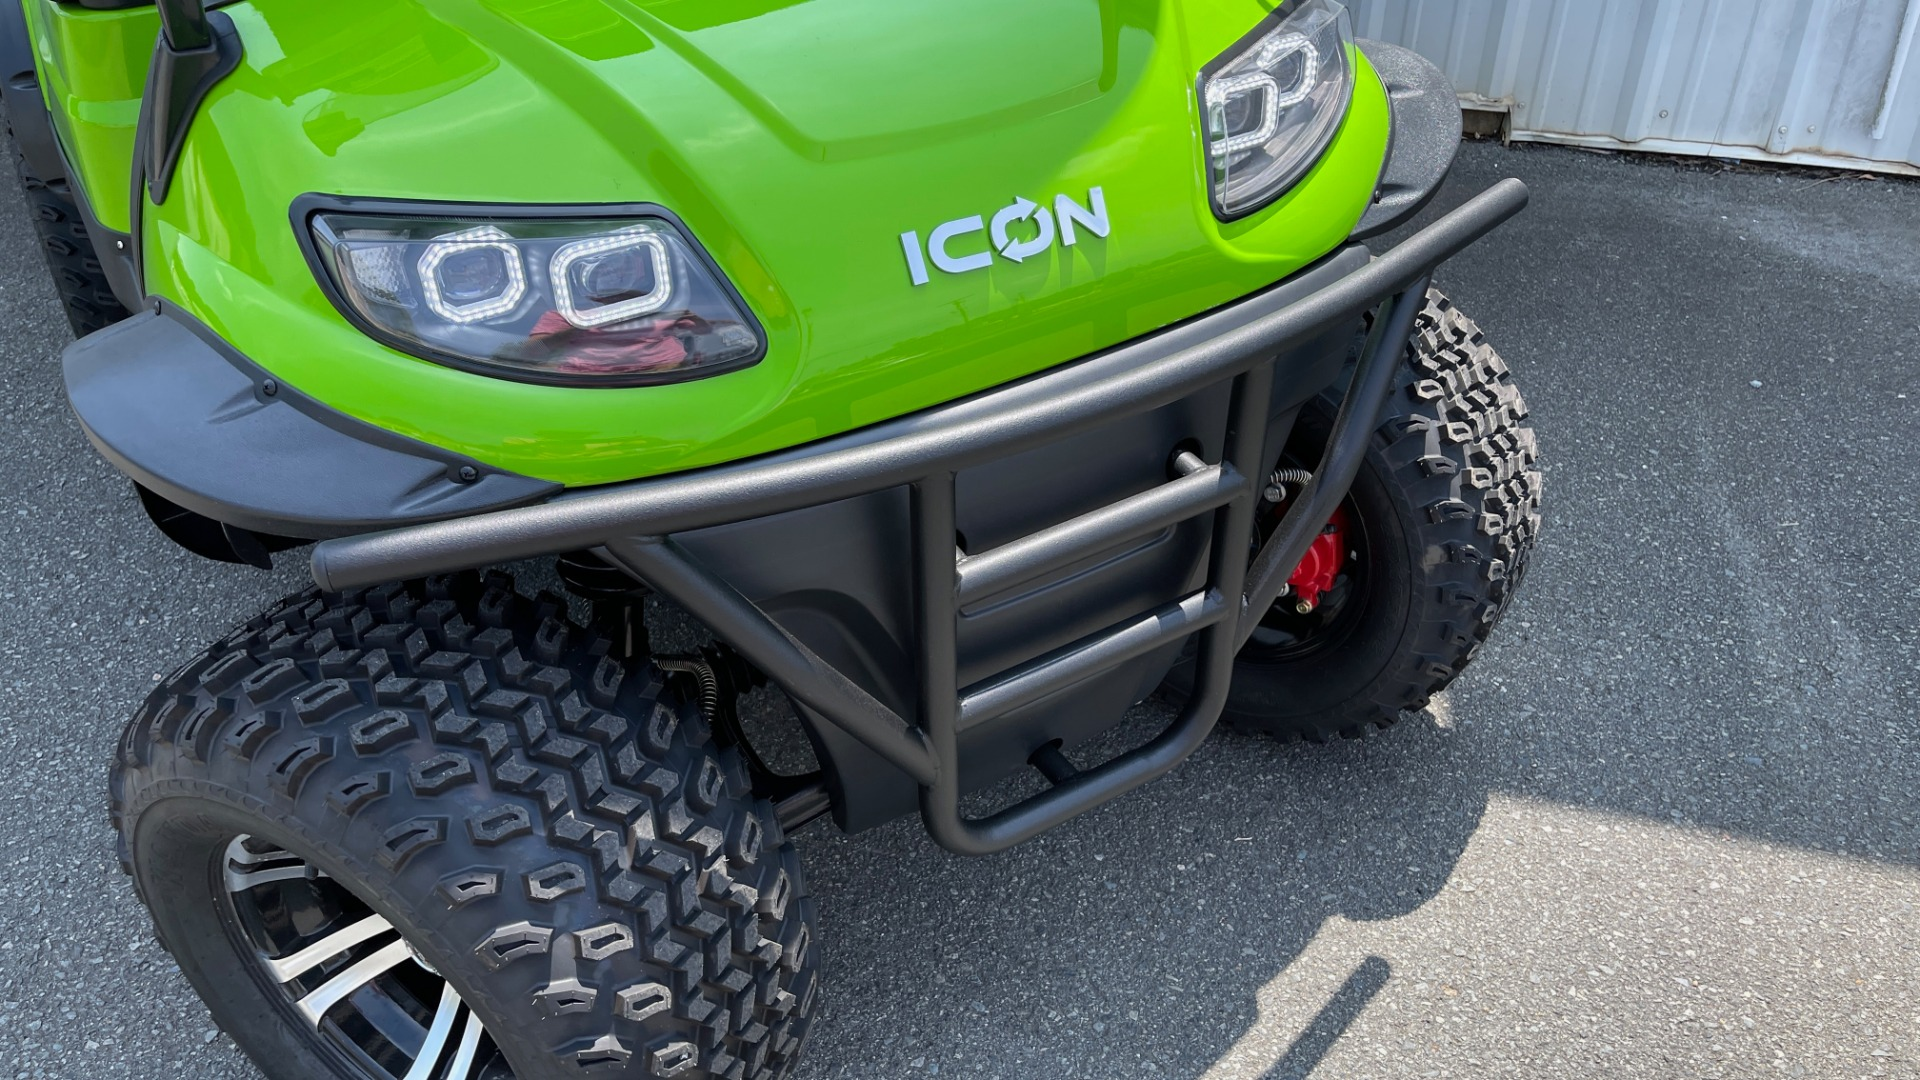 Used 2021 ICON i40L LIFTED ELECTRIC CAR / 4-PASSENGER GOLF CART / 25MPH / NEW / 1-MILE for sale $9,499 at Formula Imports in Charlotte NC 28227 39